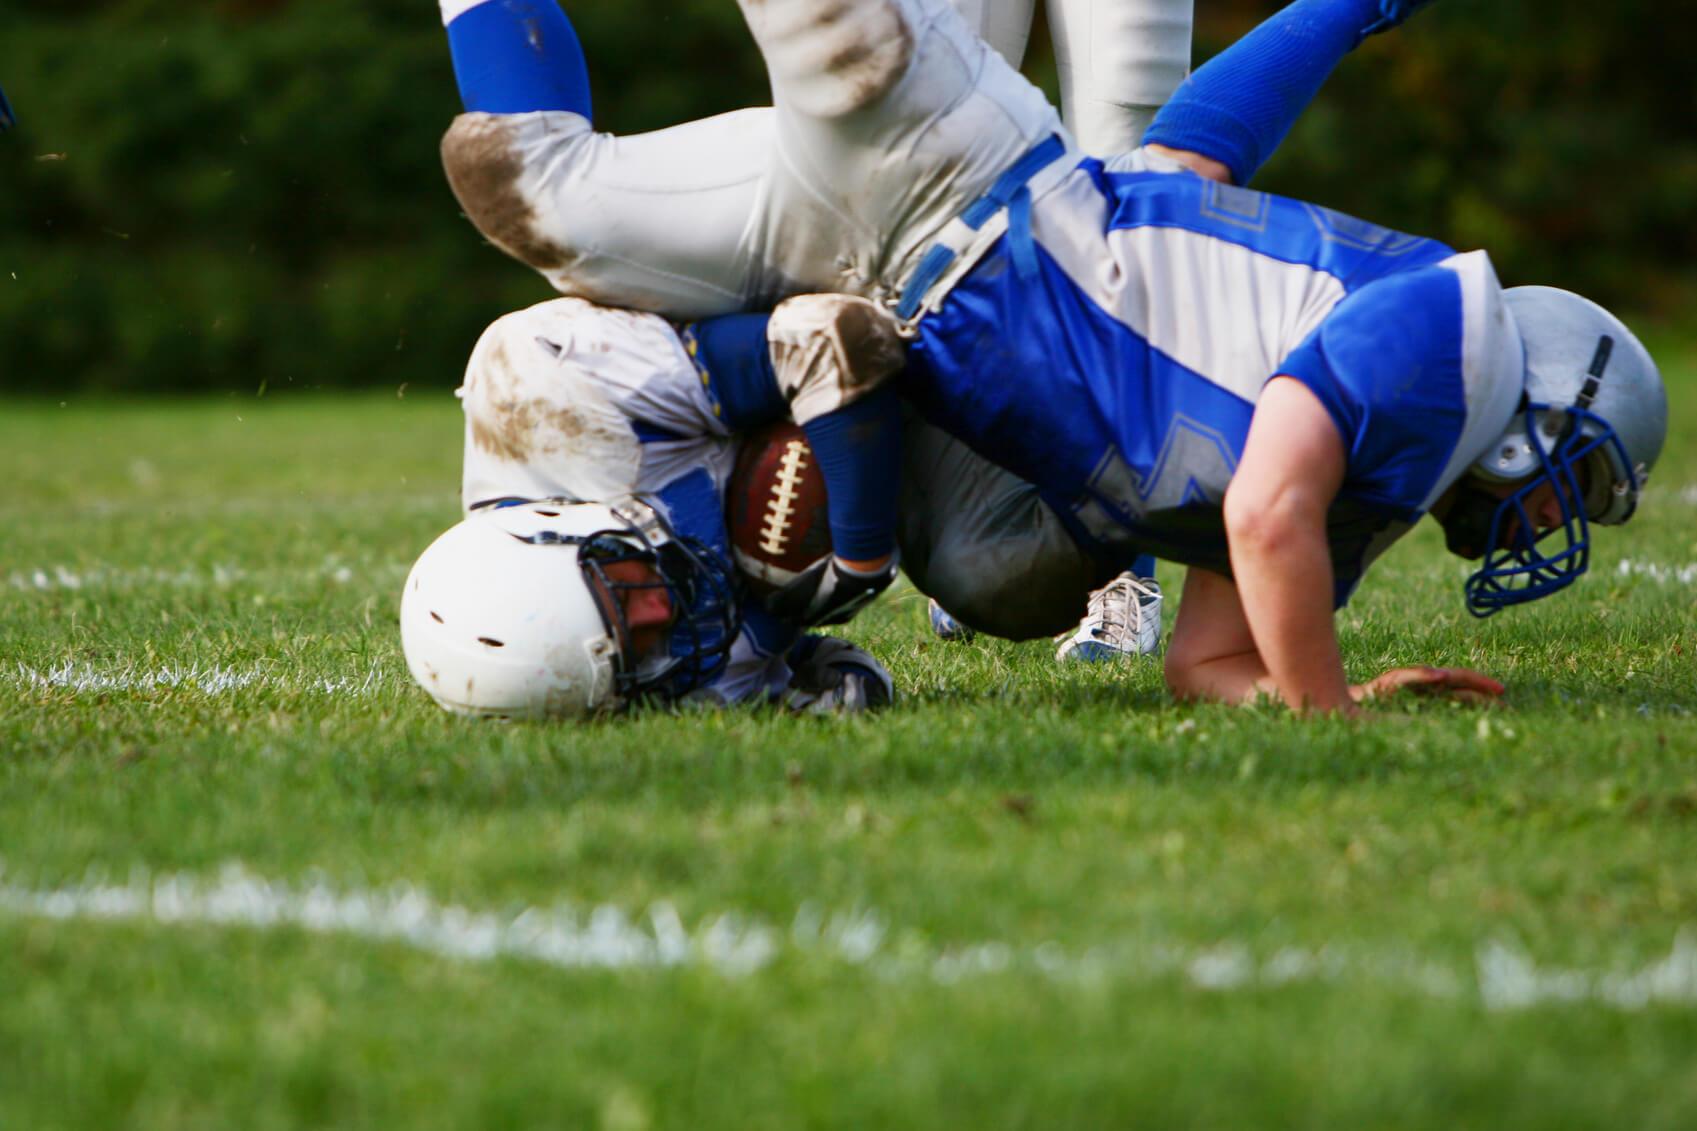 When should you see a sports medicine orthopedic specialist?